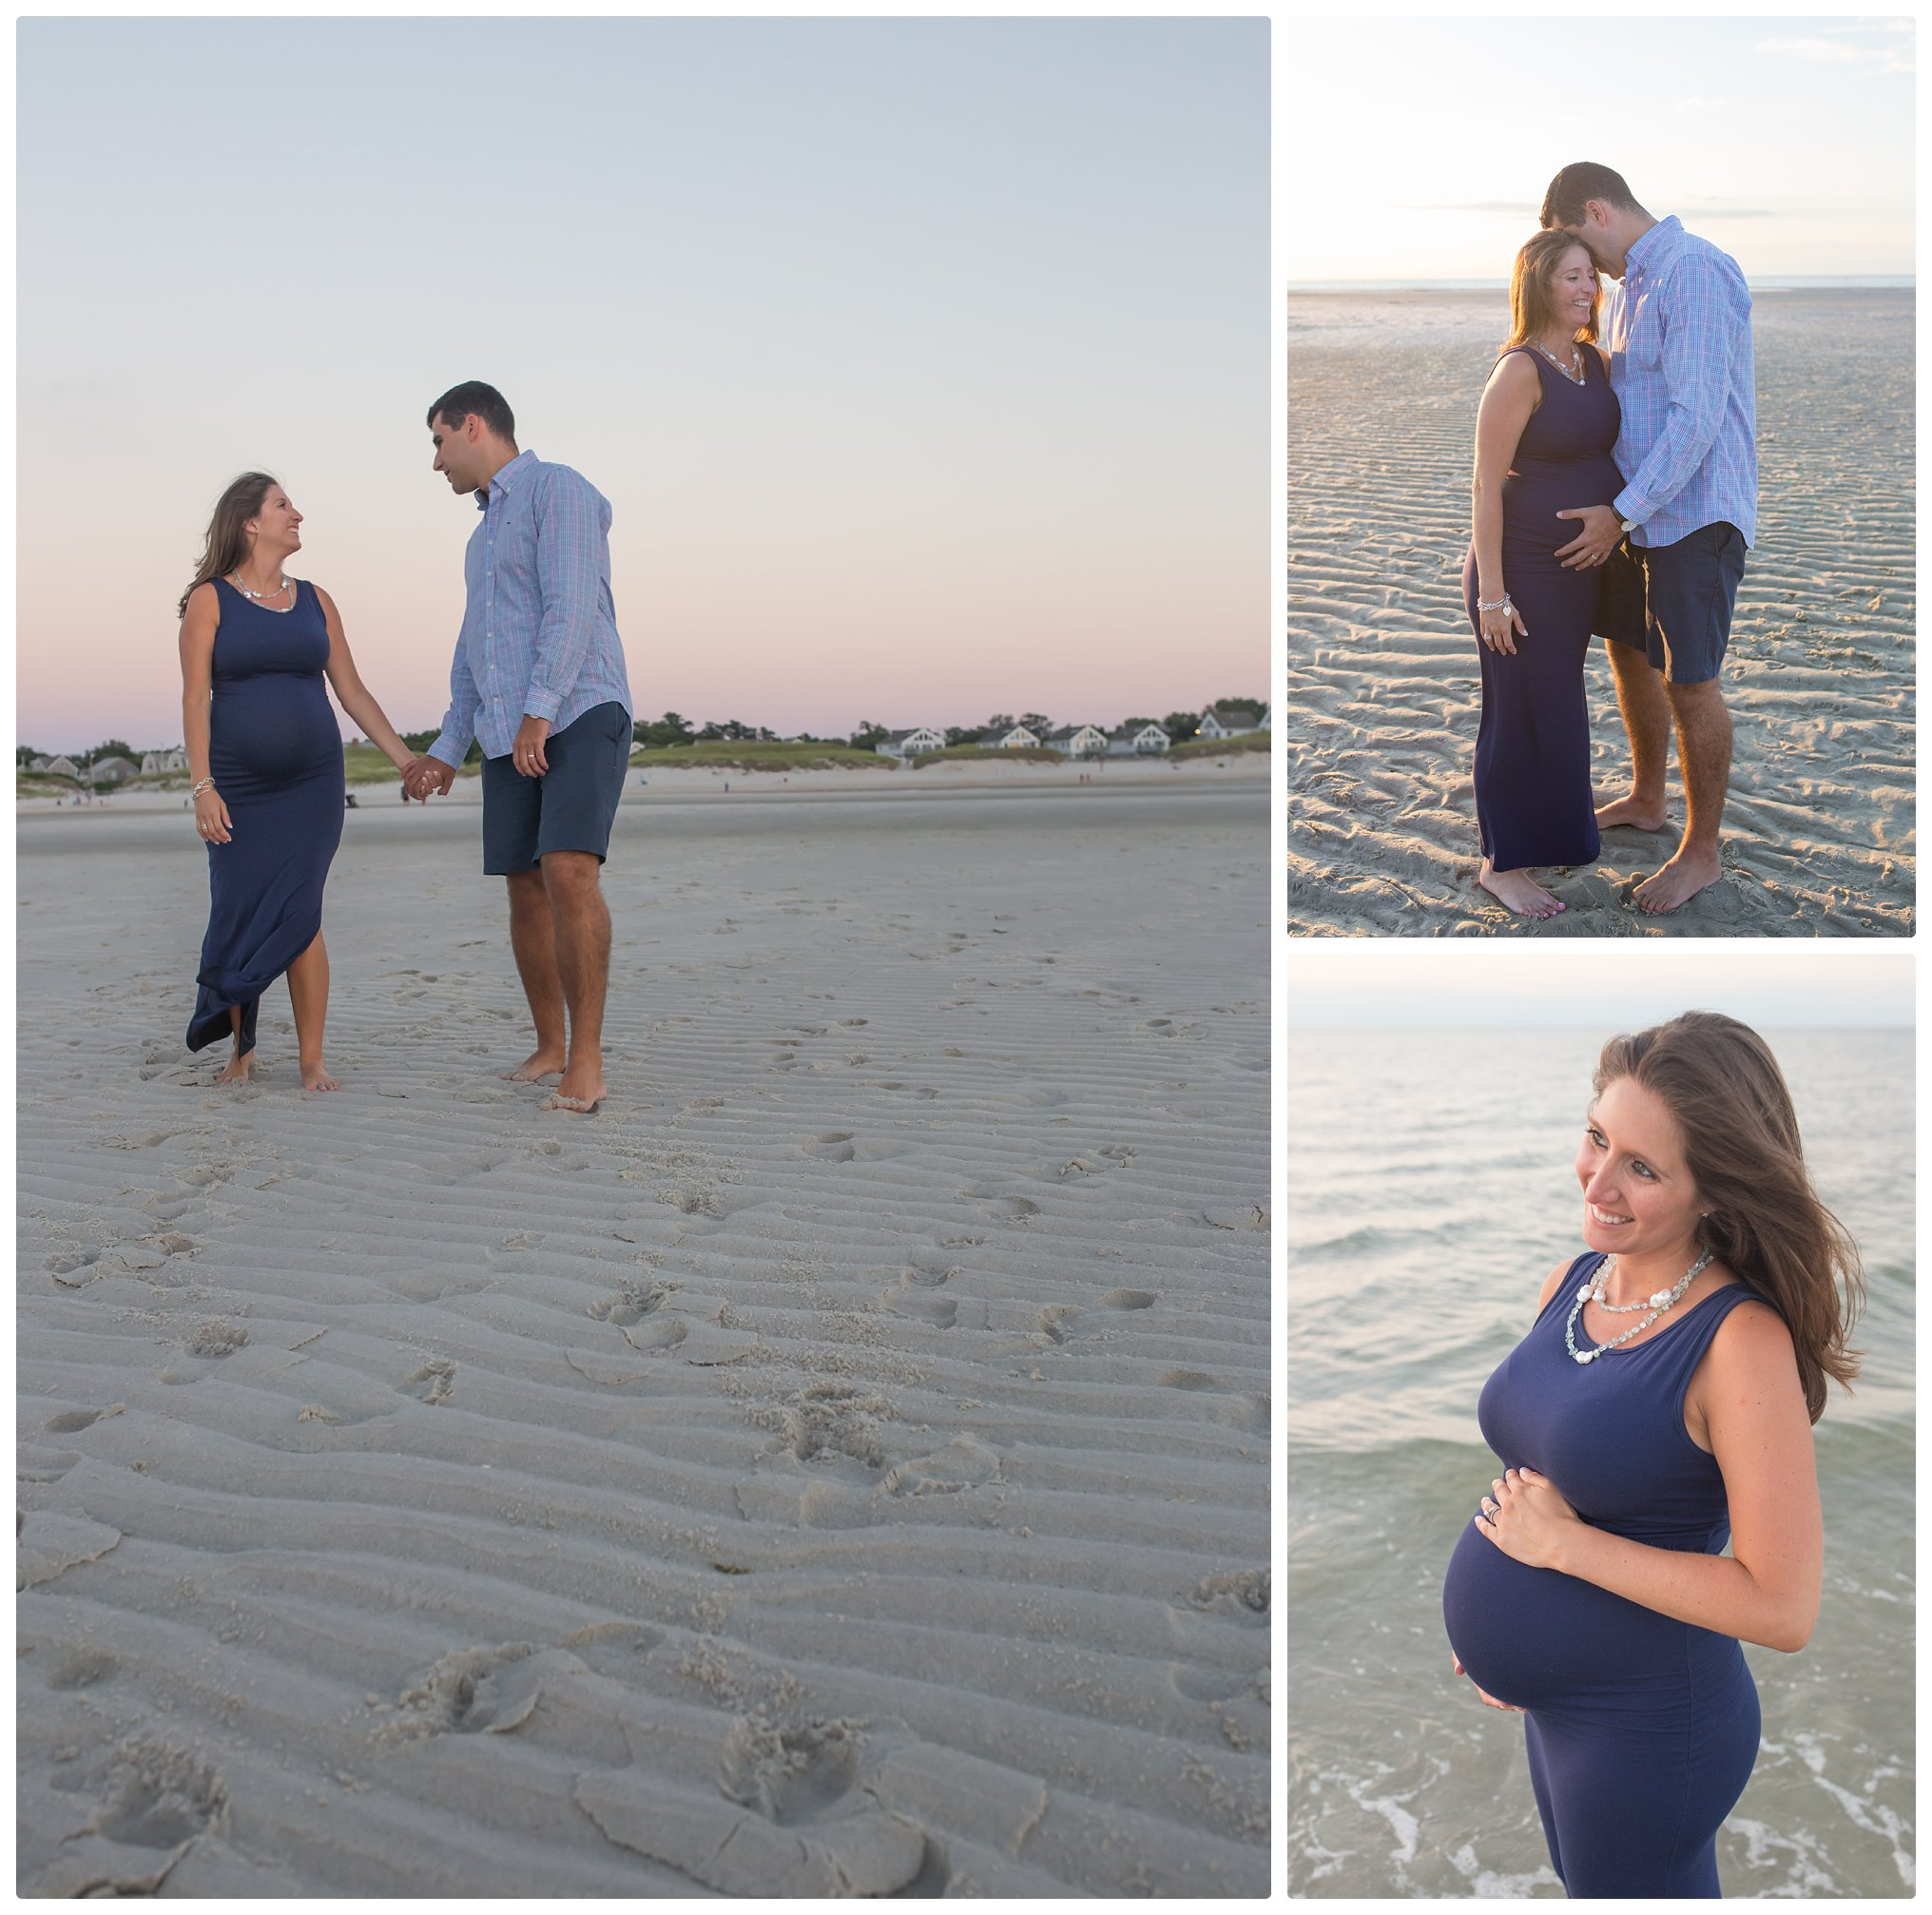 Cape Cod Maternity Beach photos - Mom and Dad laughing